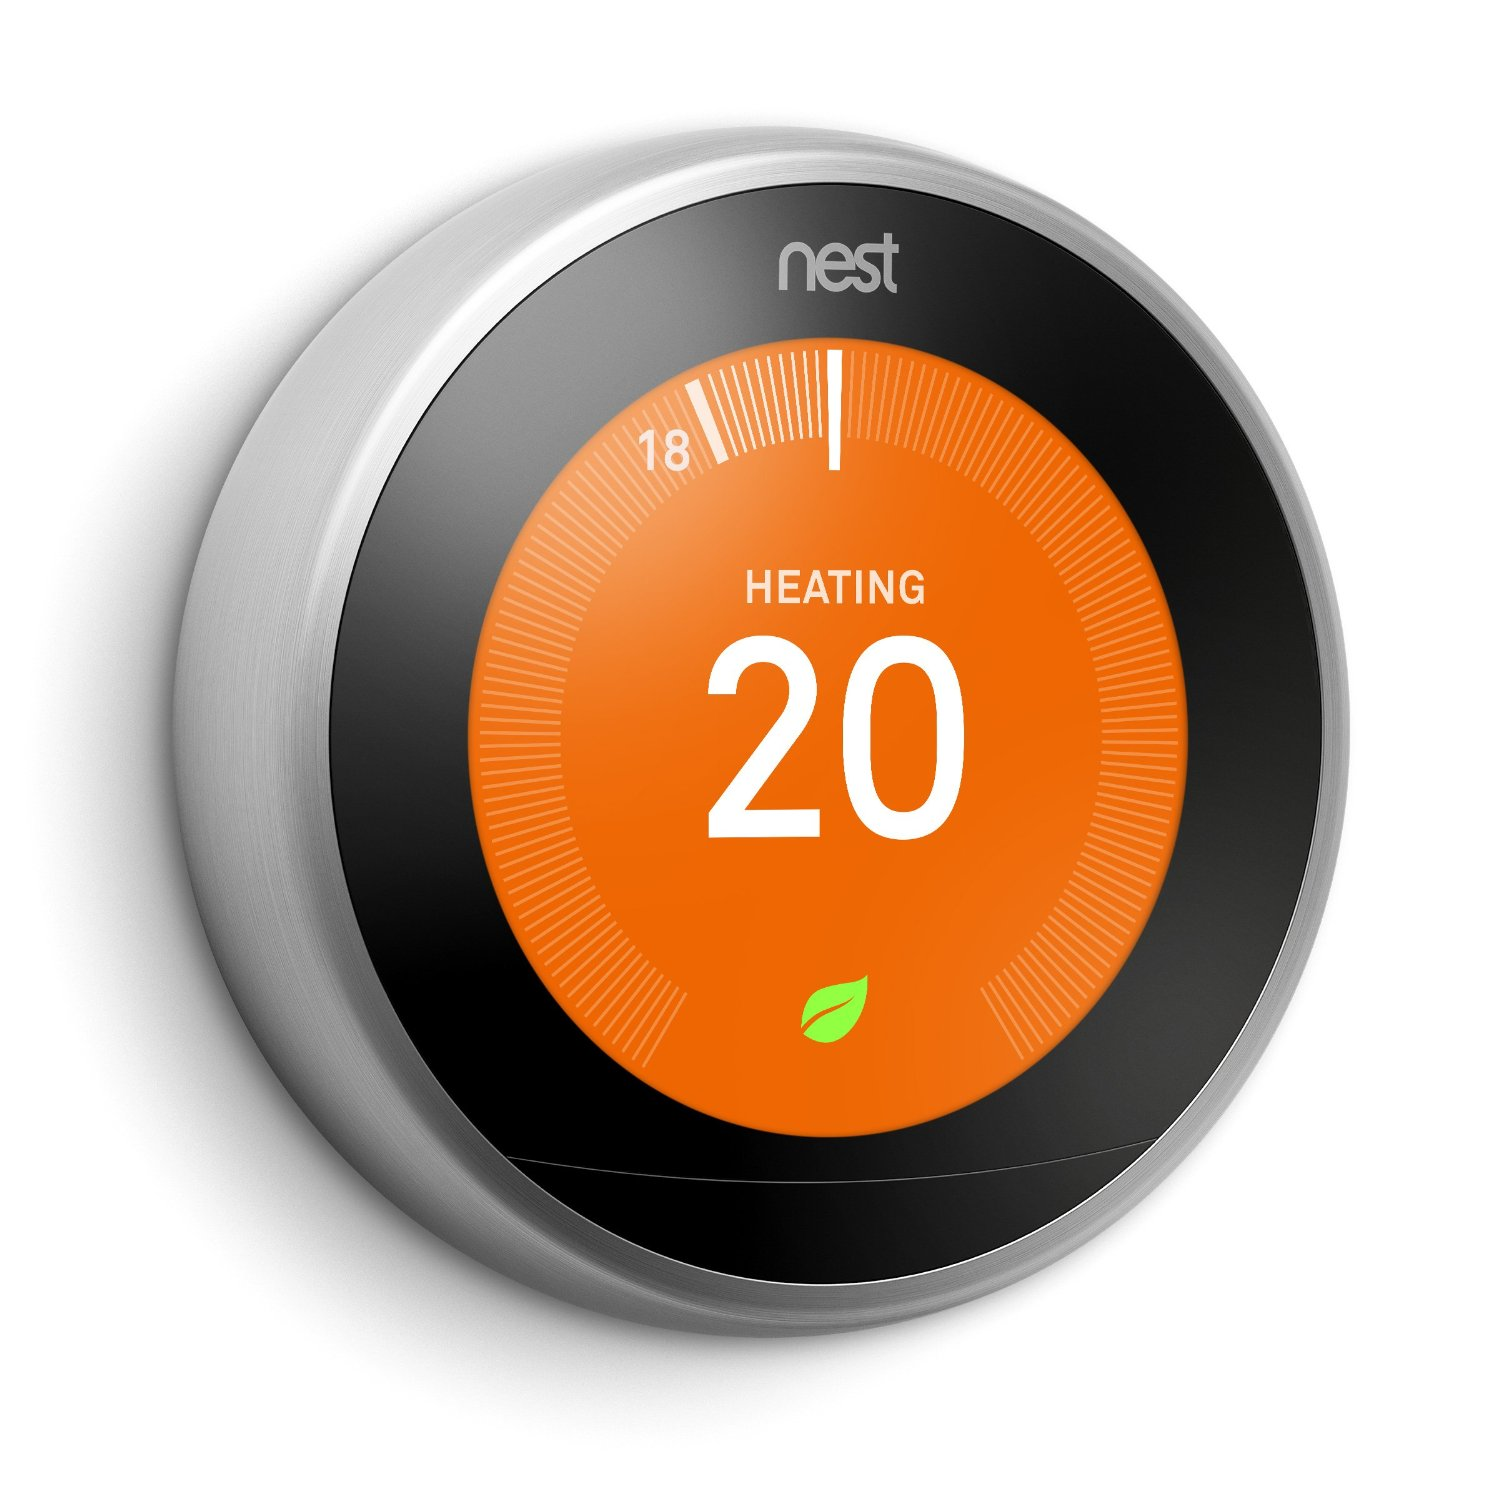 uk gets 3rd gen nest thermostat with hot water control automated home. Black Bedroom Furniture Sets. Home Design Ideas